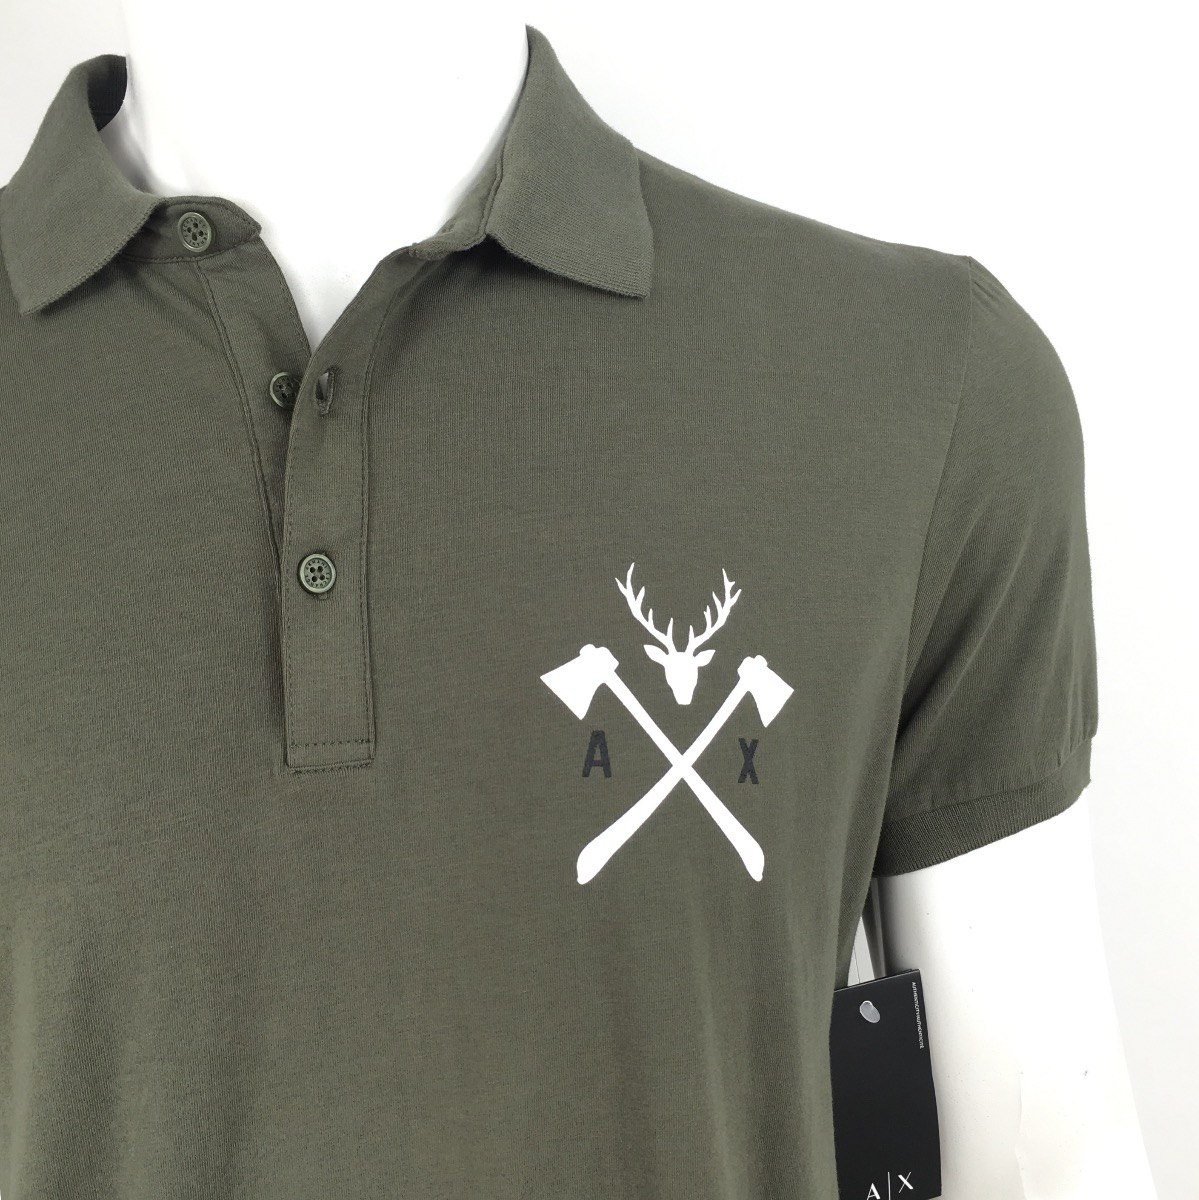 3a9f15589 camisa camiseta polo armani exchange original importada g. Carregando zoom.